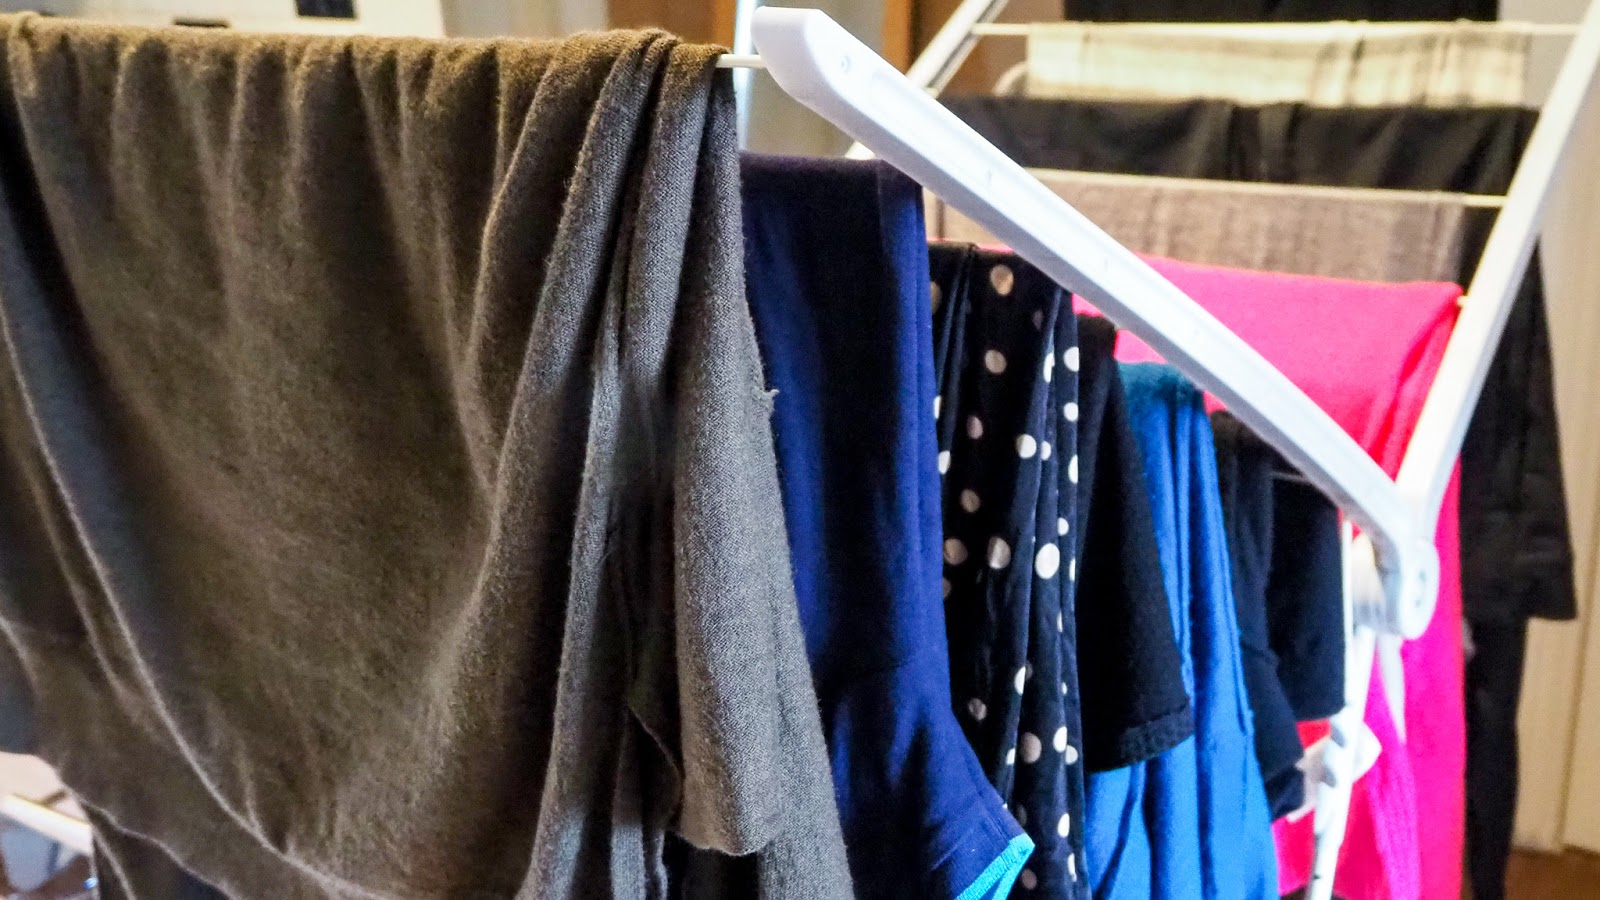 5 Things to Do While in Quarantine - Volume #3 Laundry